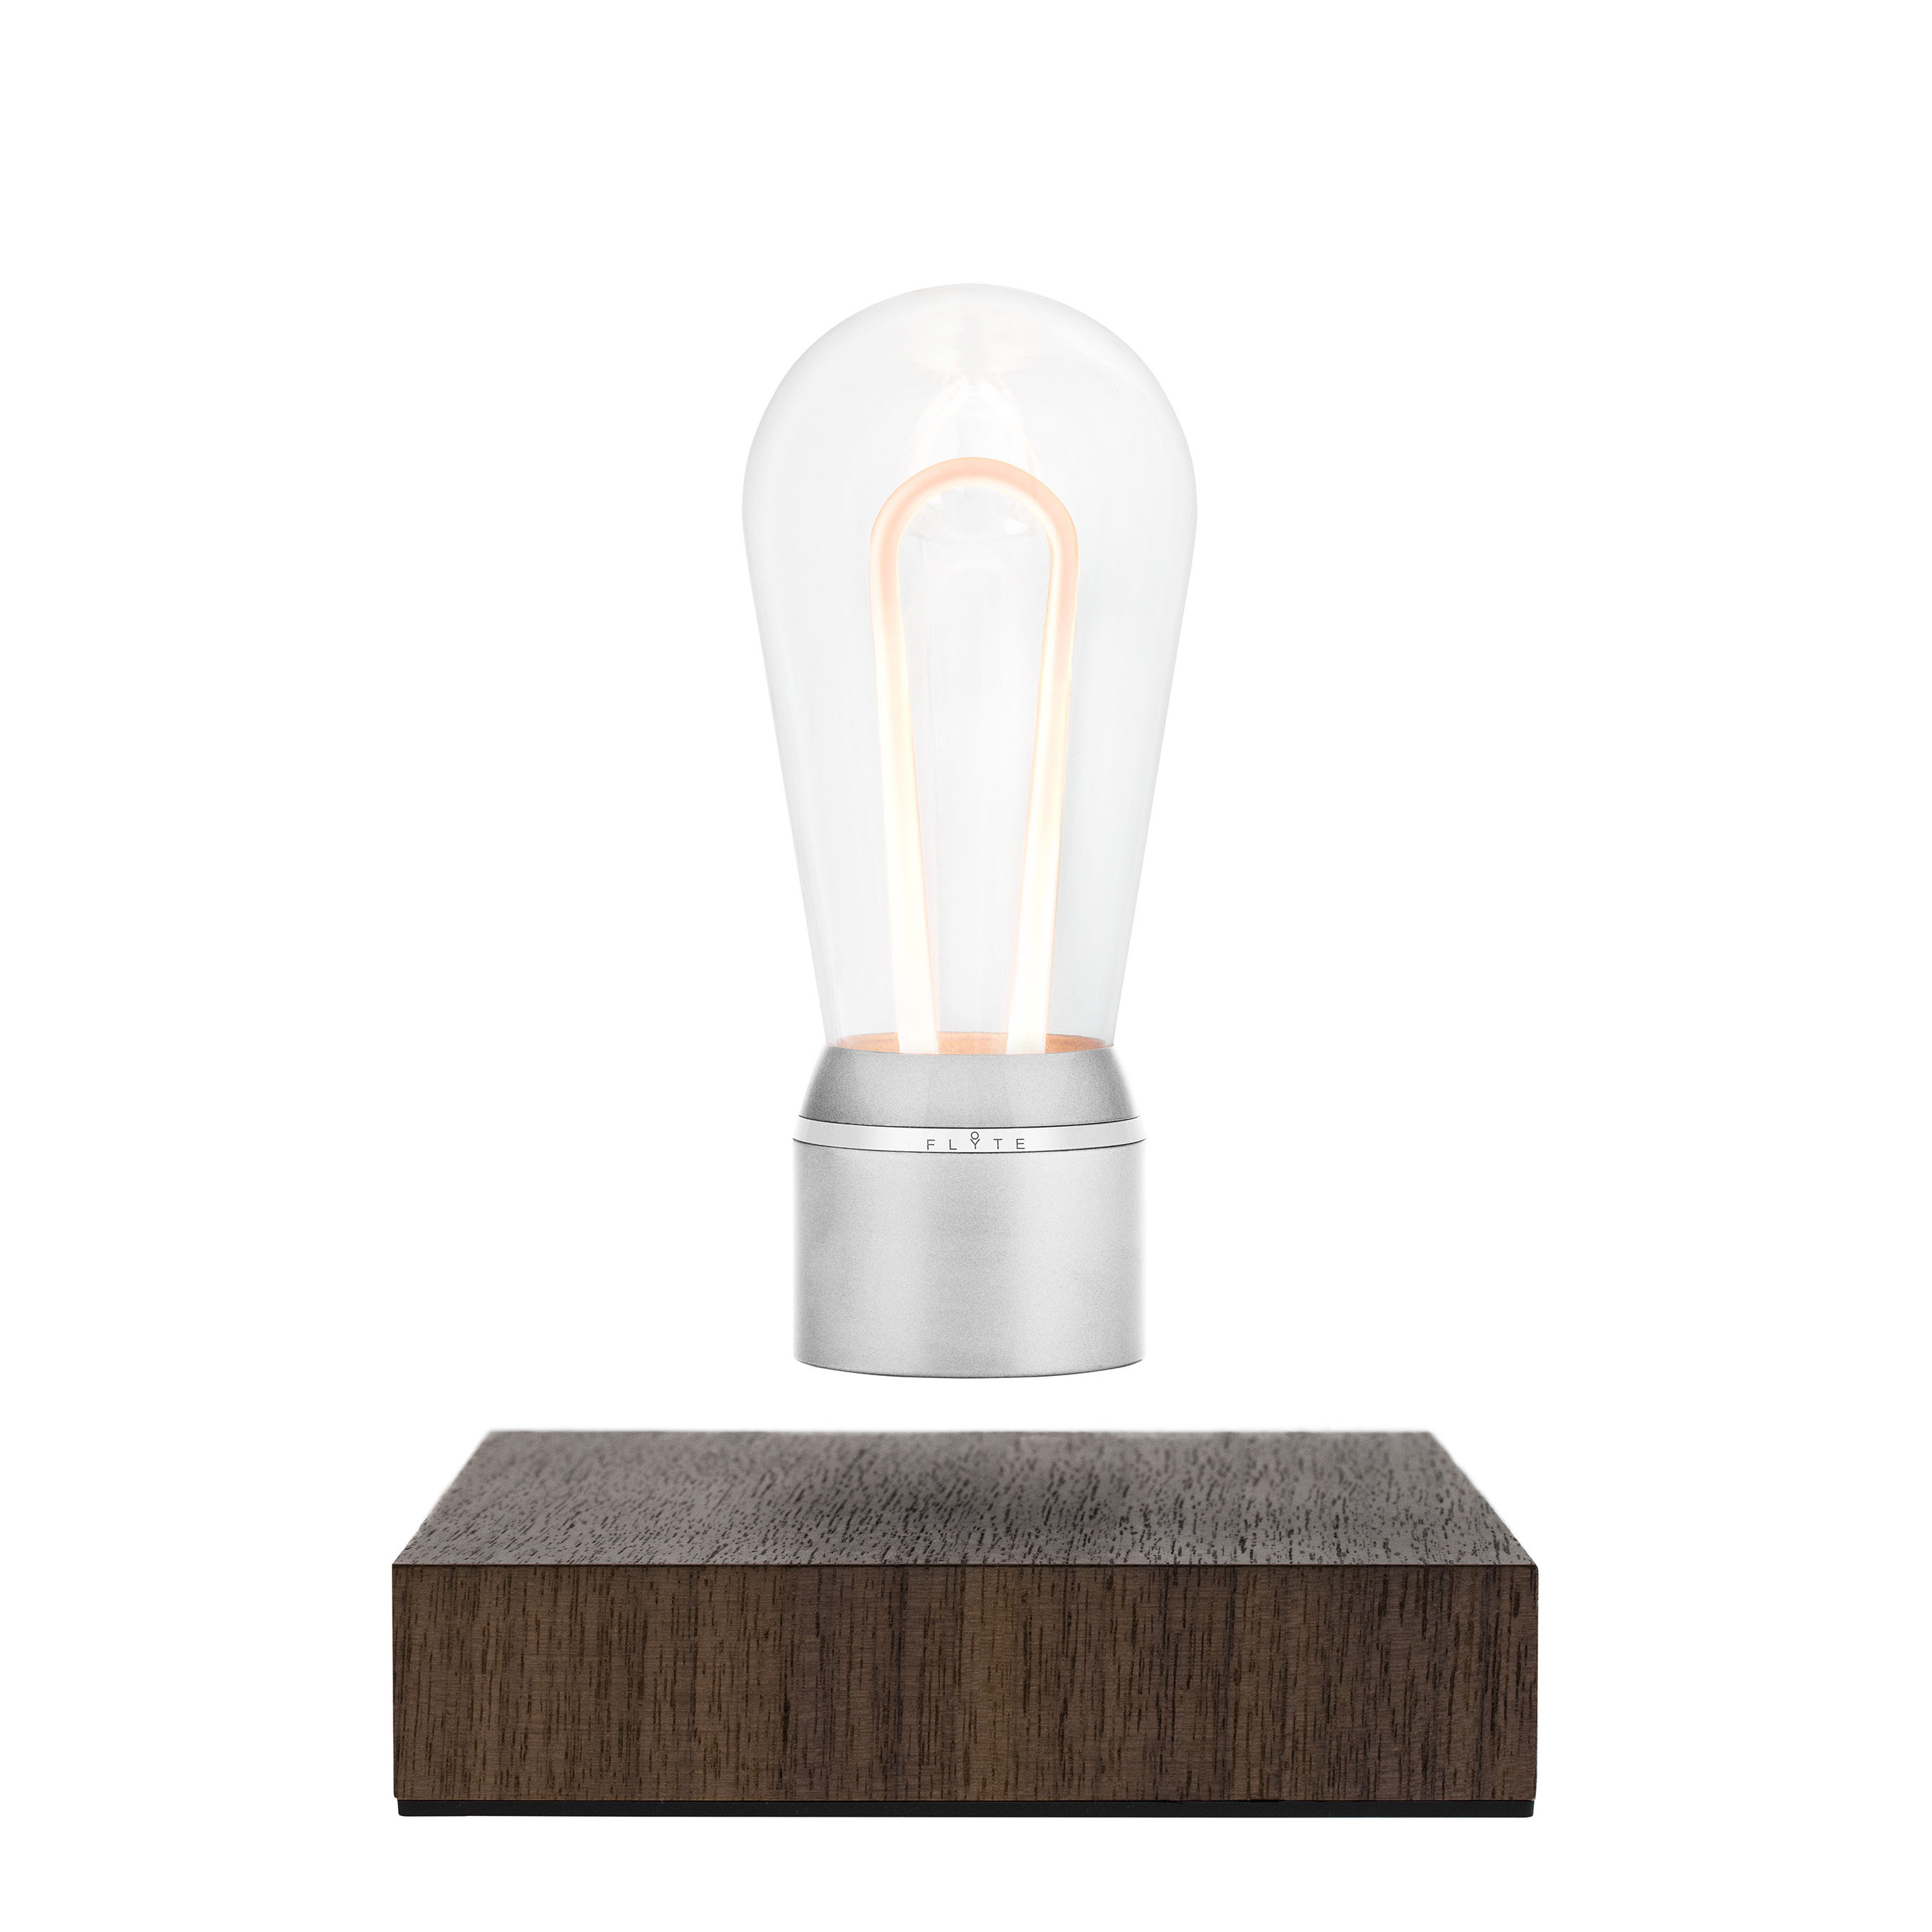 Lighting - Table Lamps - Flyte Nikola Table lamp - / Levitating bulb by Flyte - Chrome / Walnut base - Aluminium, Glass, Walnut